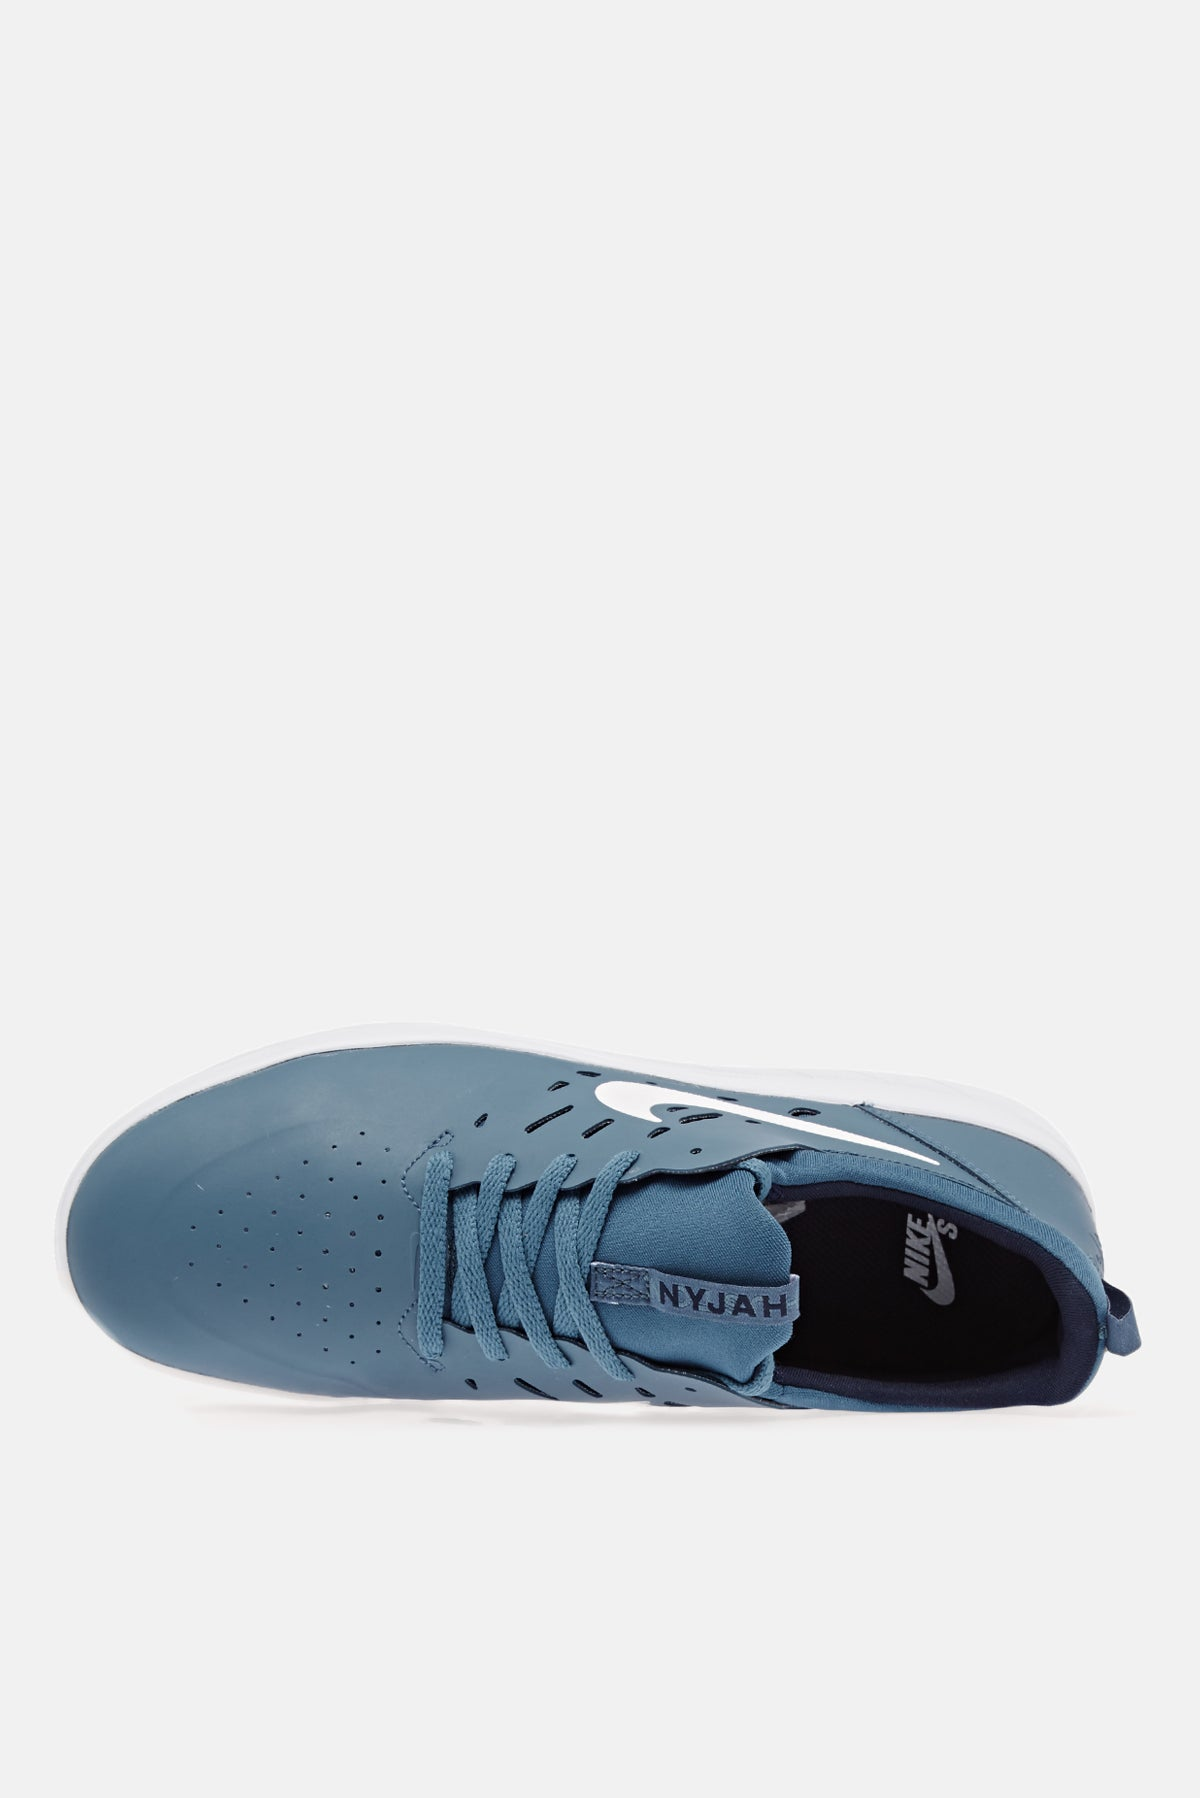 4354b040 Nike SB Nyjah Free Shoes available from Priory